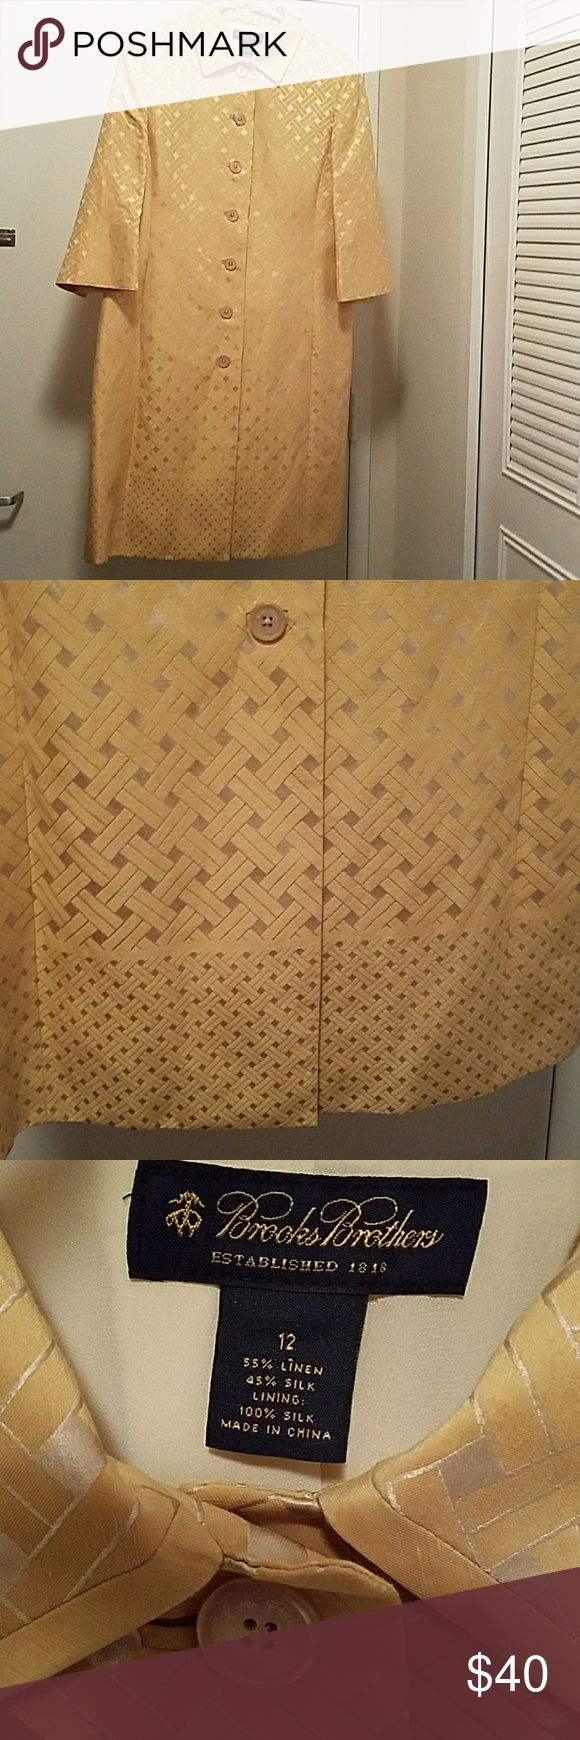 Brooks Brother gold coat Brooks Brother gold coat with basket weave design, lined. This can be worn in the office like blazer For someone tall. I bought it on Brooks Brother online but coat is too long for me 5' Brooks Brothers Jackets & Coats Blazers